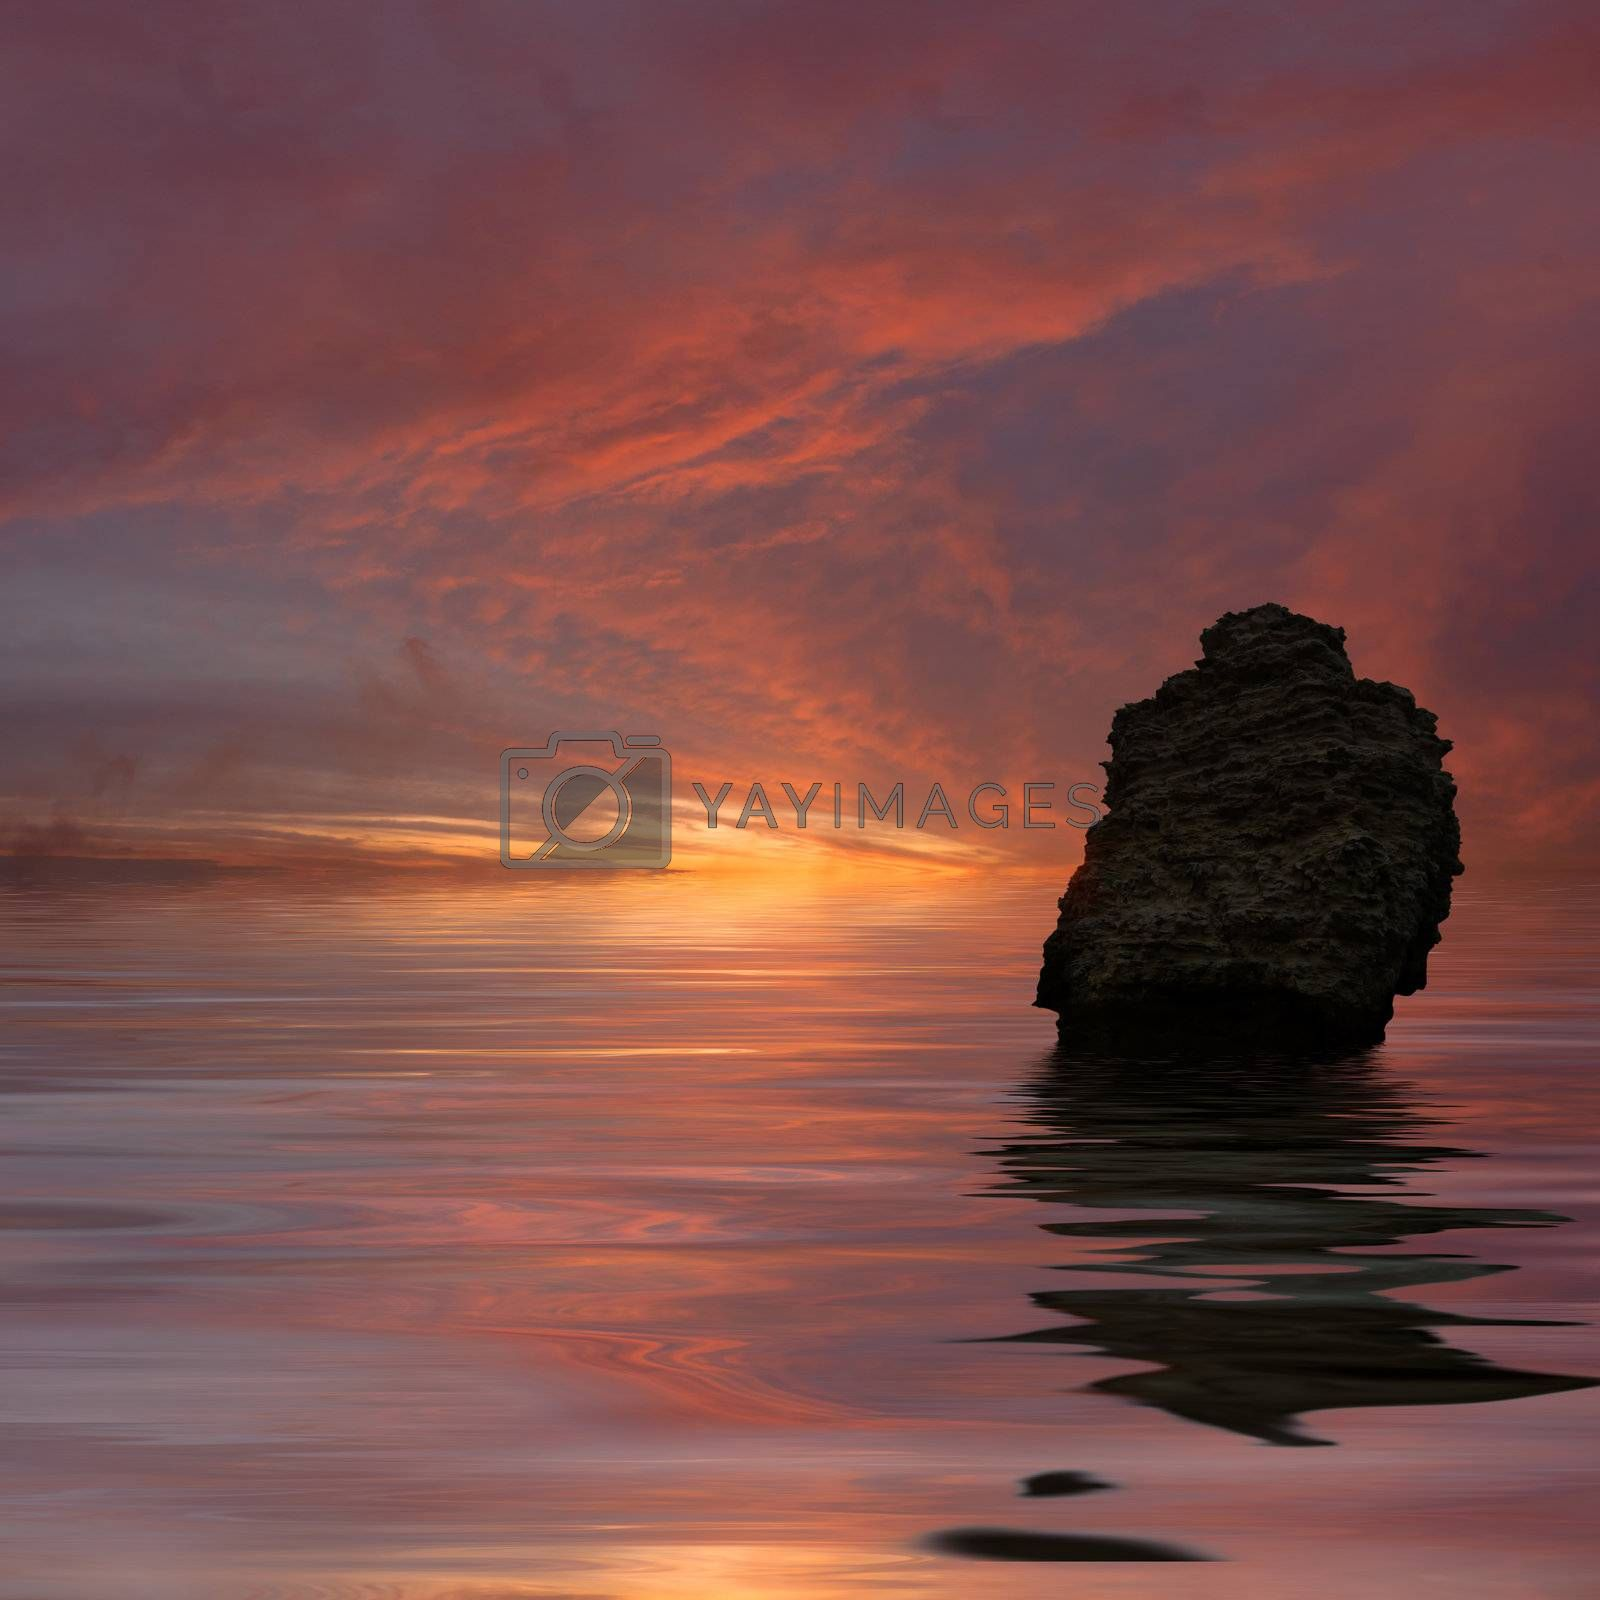 Landscape with the lonely rock at the ocean and the colourful sunset which was reflected in water